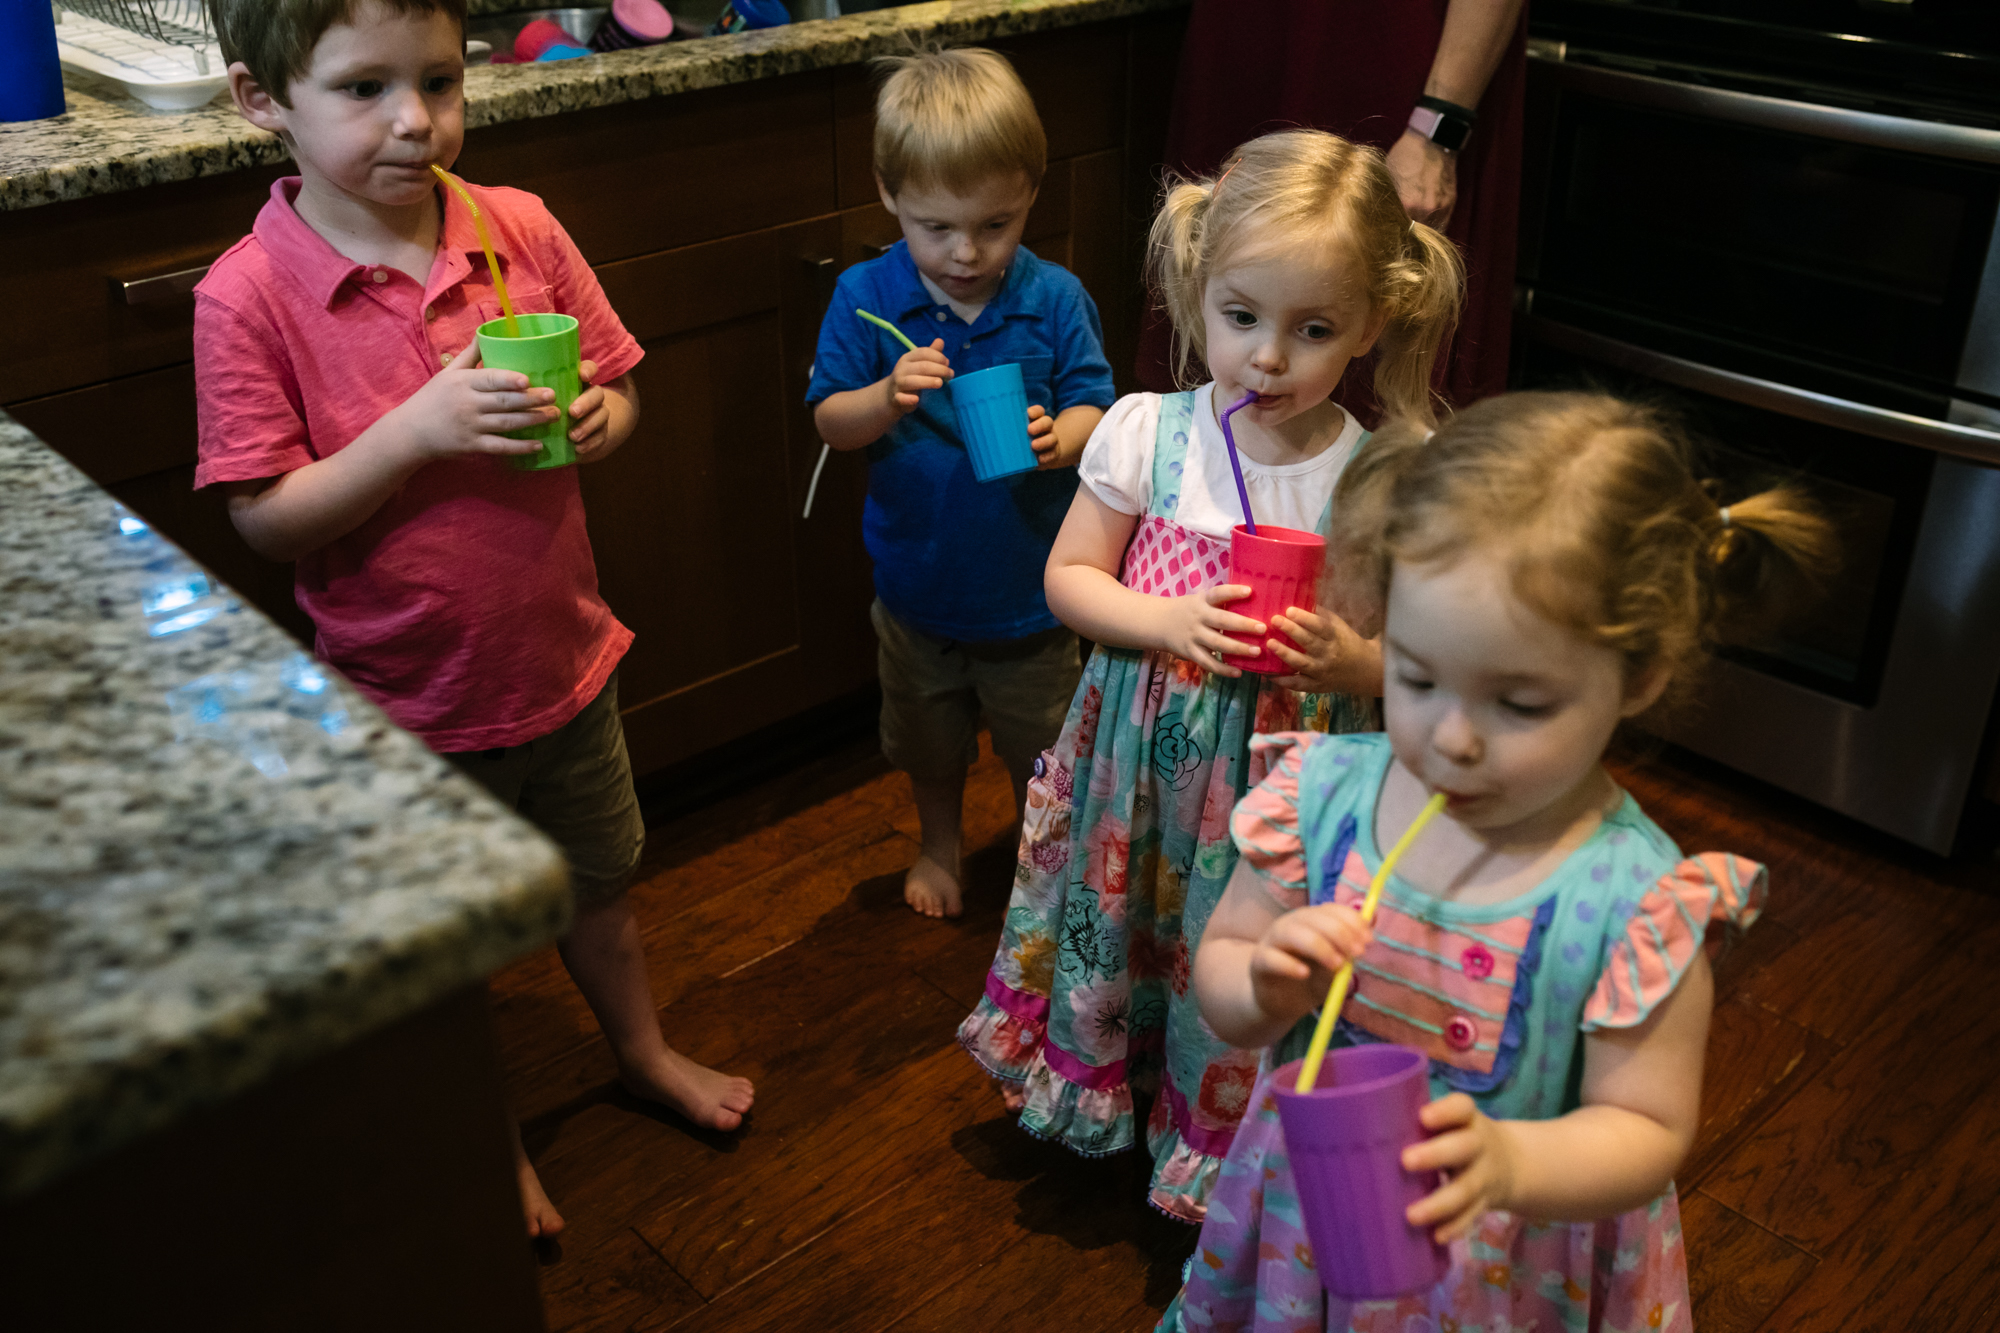 Kids drinking out of cups with straws in a kitchen